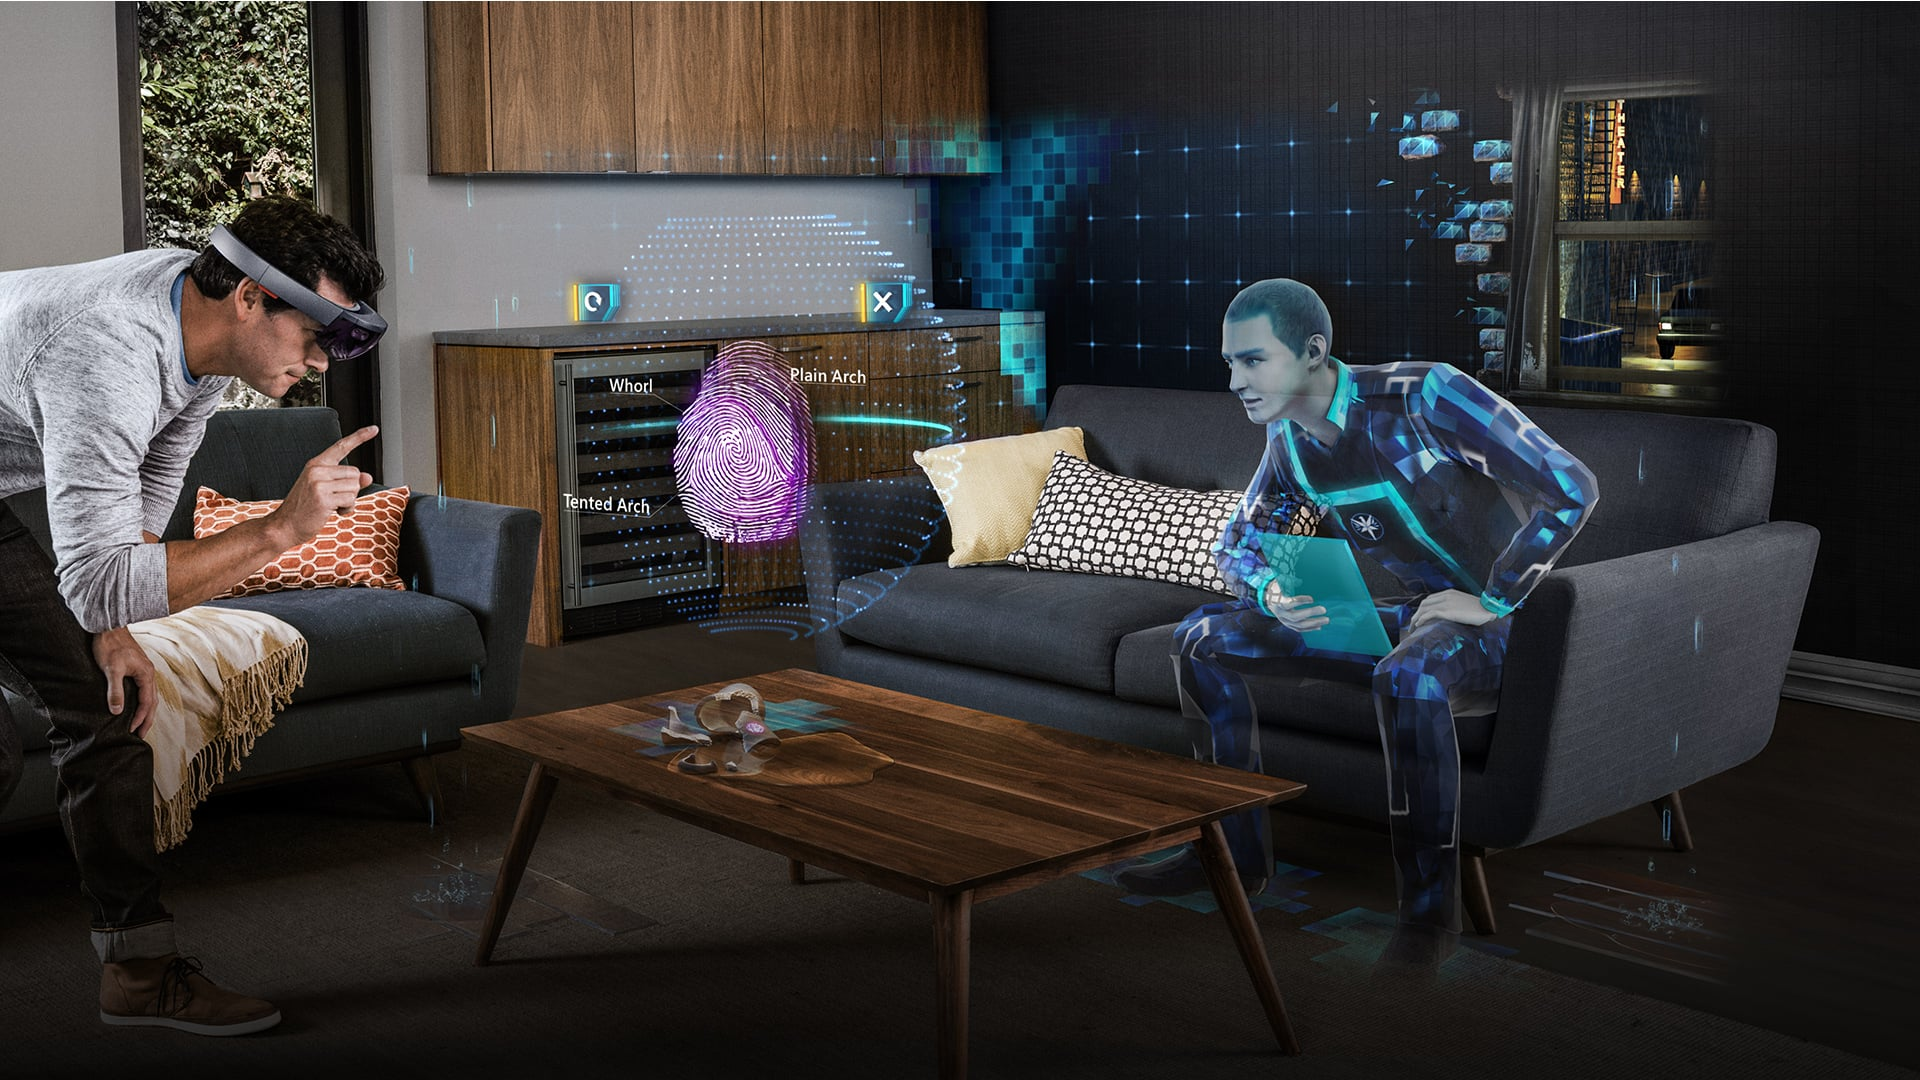 Develop Mixed Reality Apps For Holographic Technology